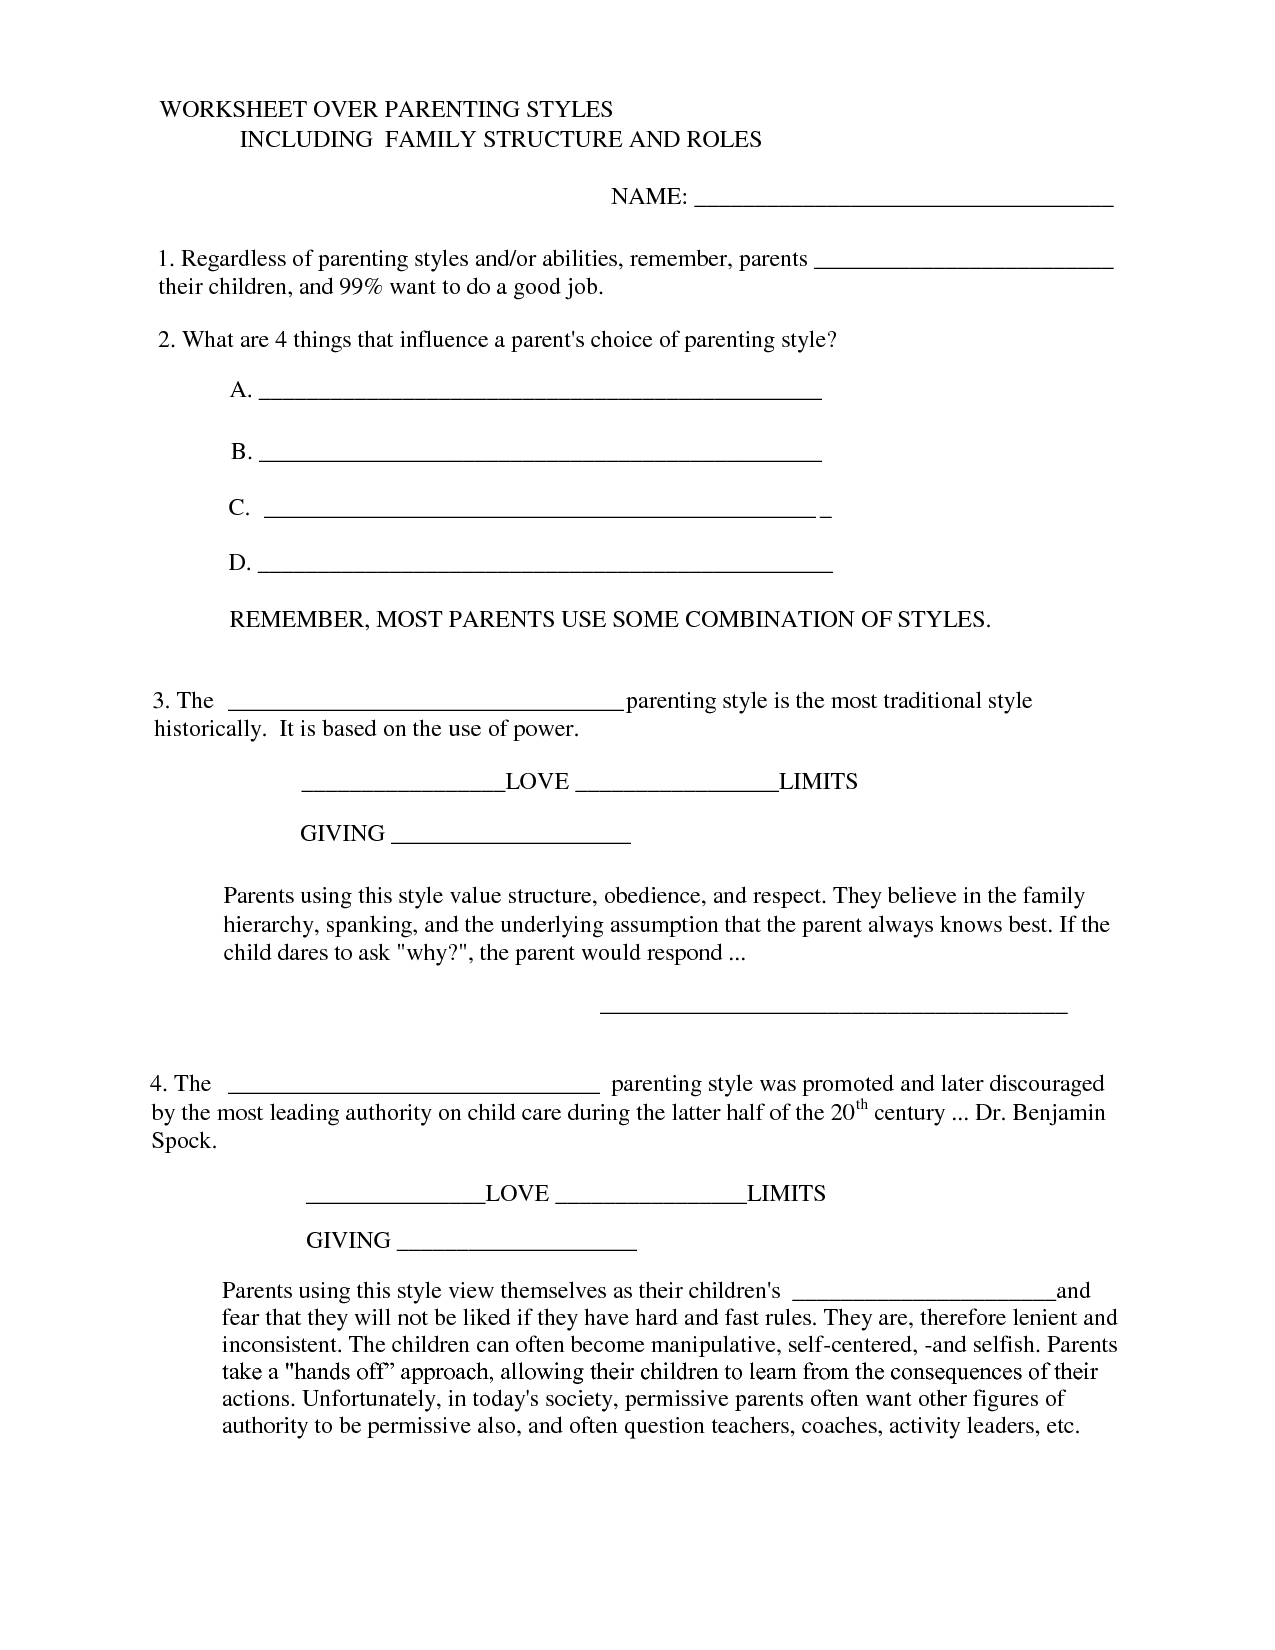 12 Best Images of Family Communication Worksheets  ParentChild Communication Worksheets